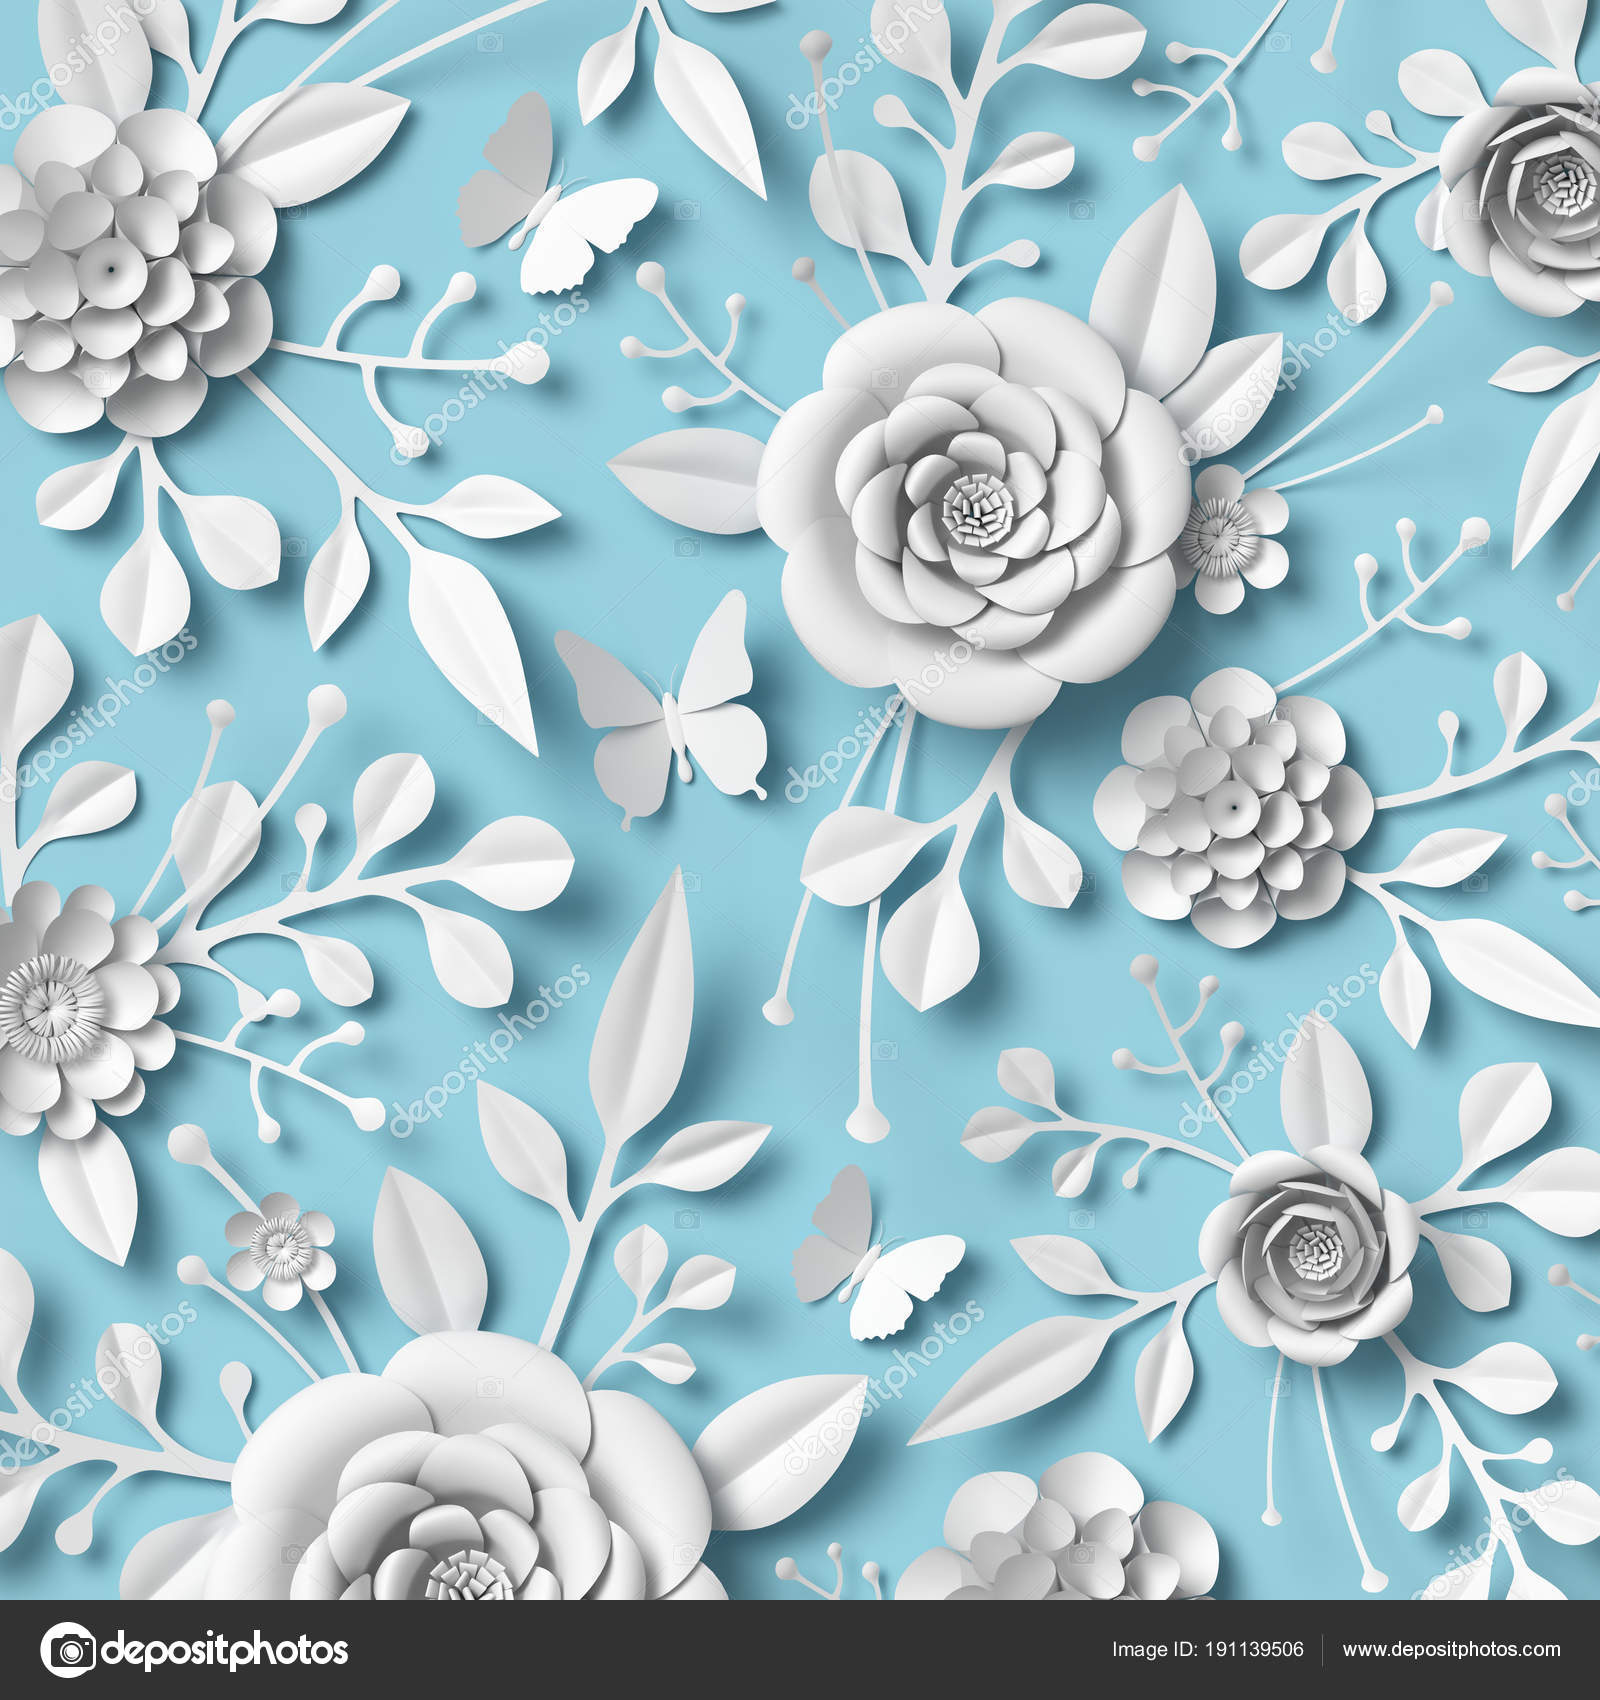 3d rendering white paper flowers on blue background botanical ornament bridal design wedding wall decoration floral pattern photo by wacomka